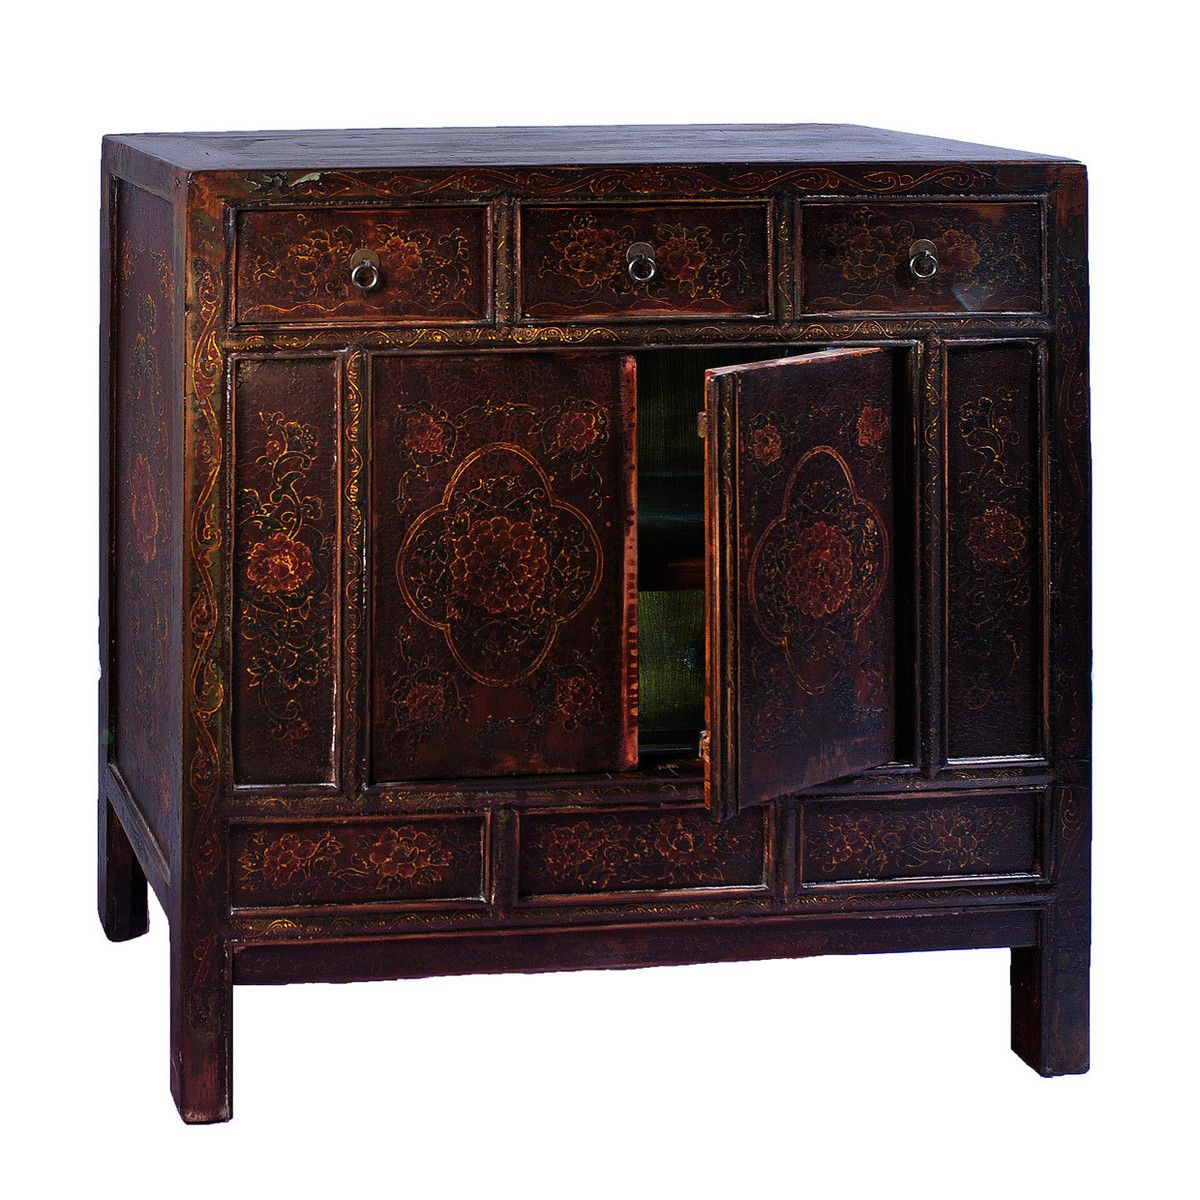 Small Movable Kitchen Island For Sale Thinc Technology: Tibetan Storage Cabinet